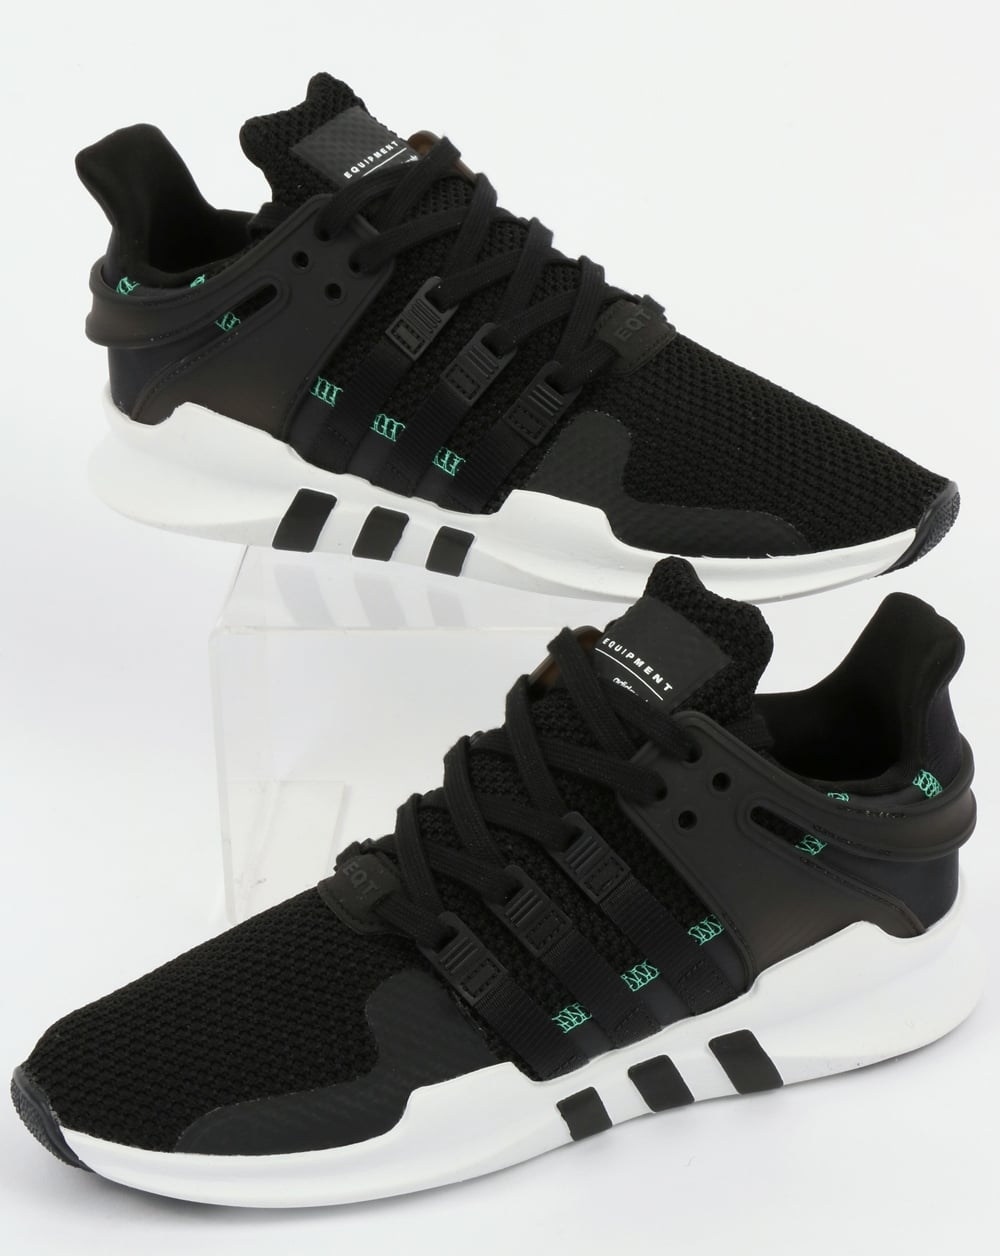 5fa758324489 adidas Trainers Adidas EQT Support ADV Trainers Black Black White